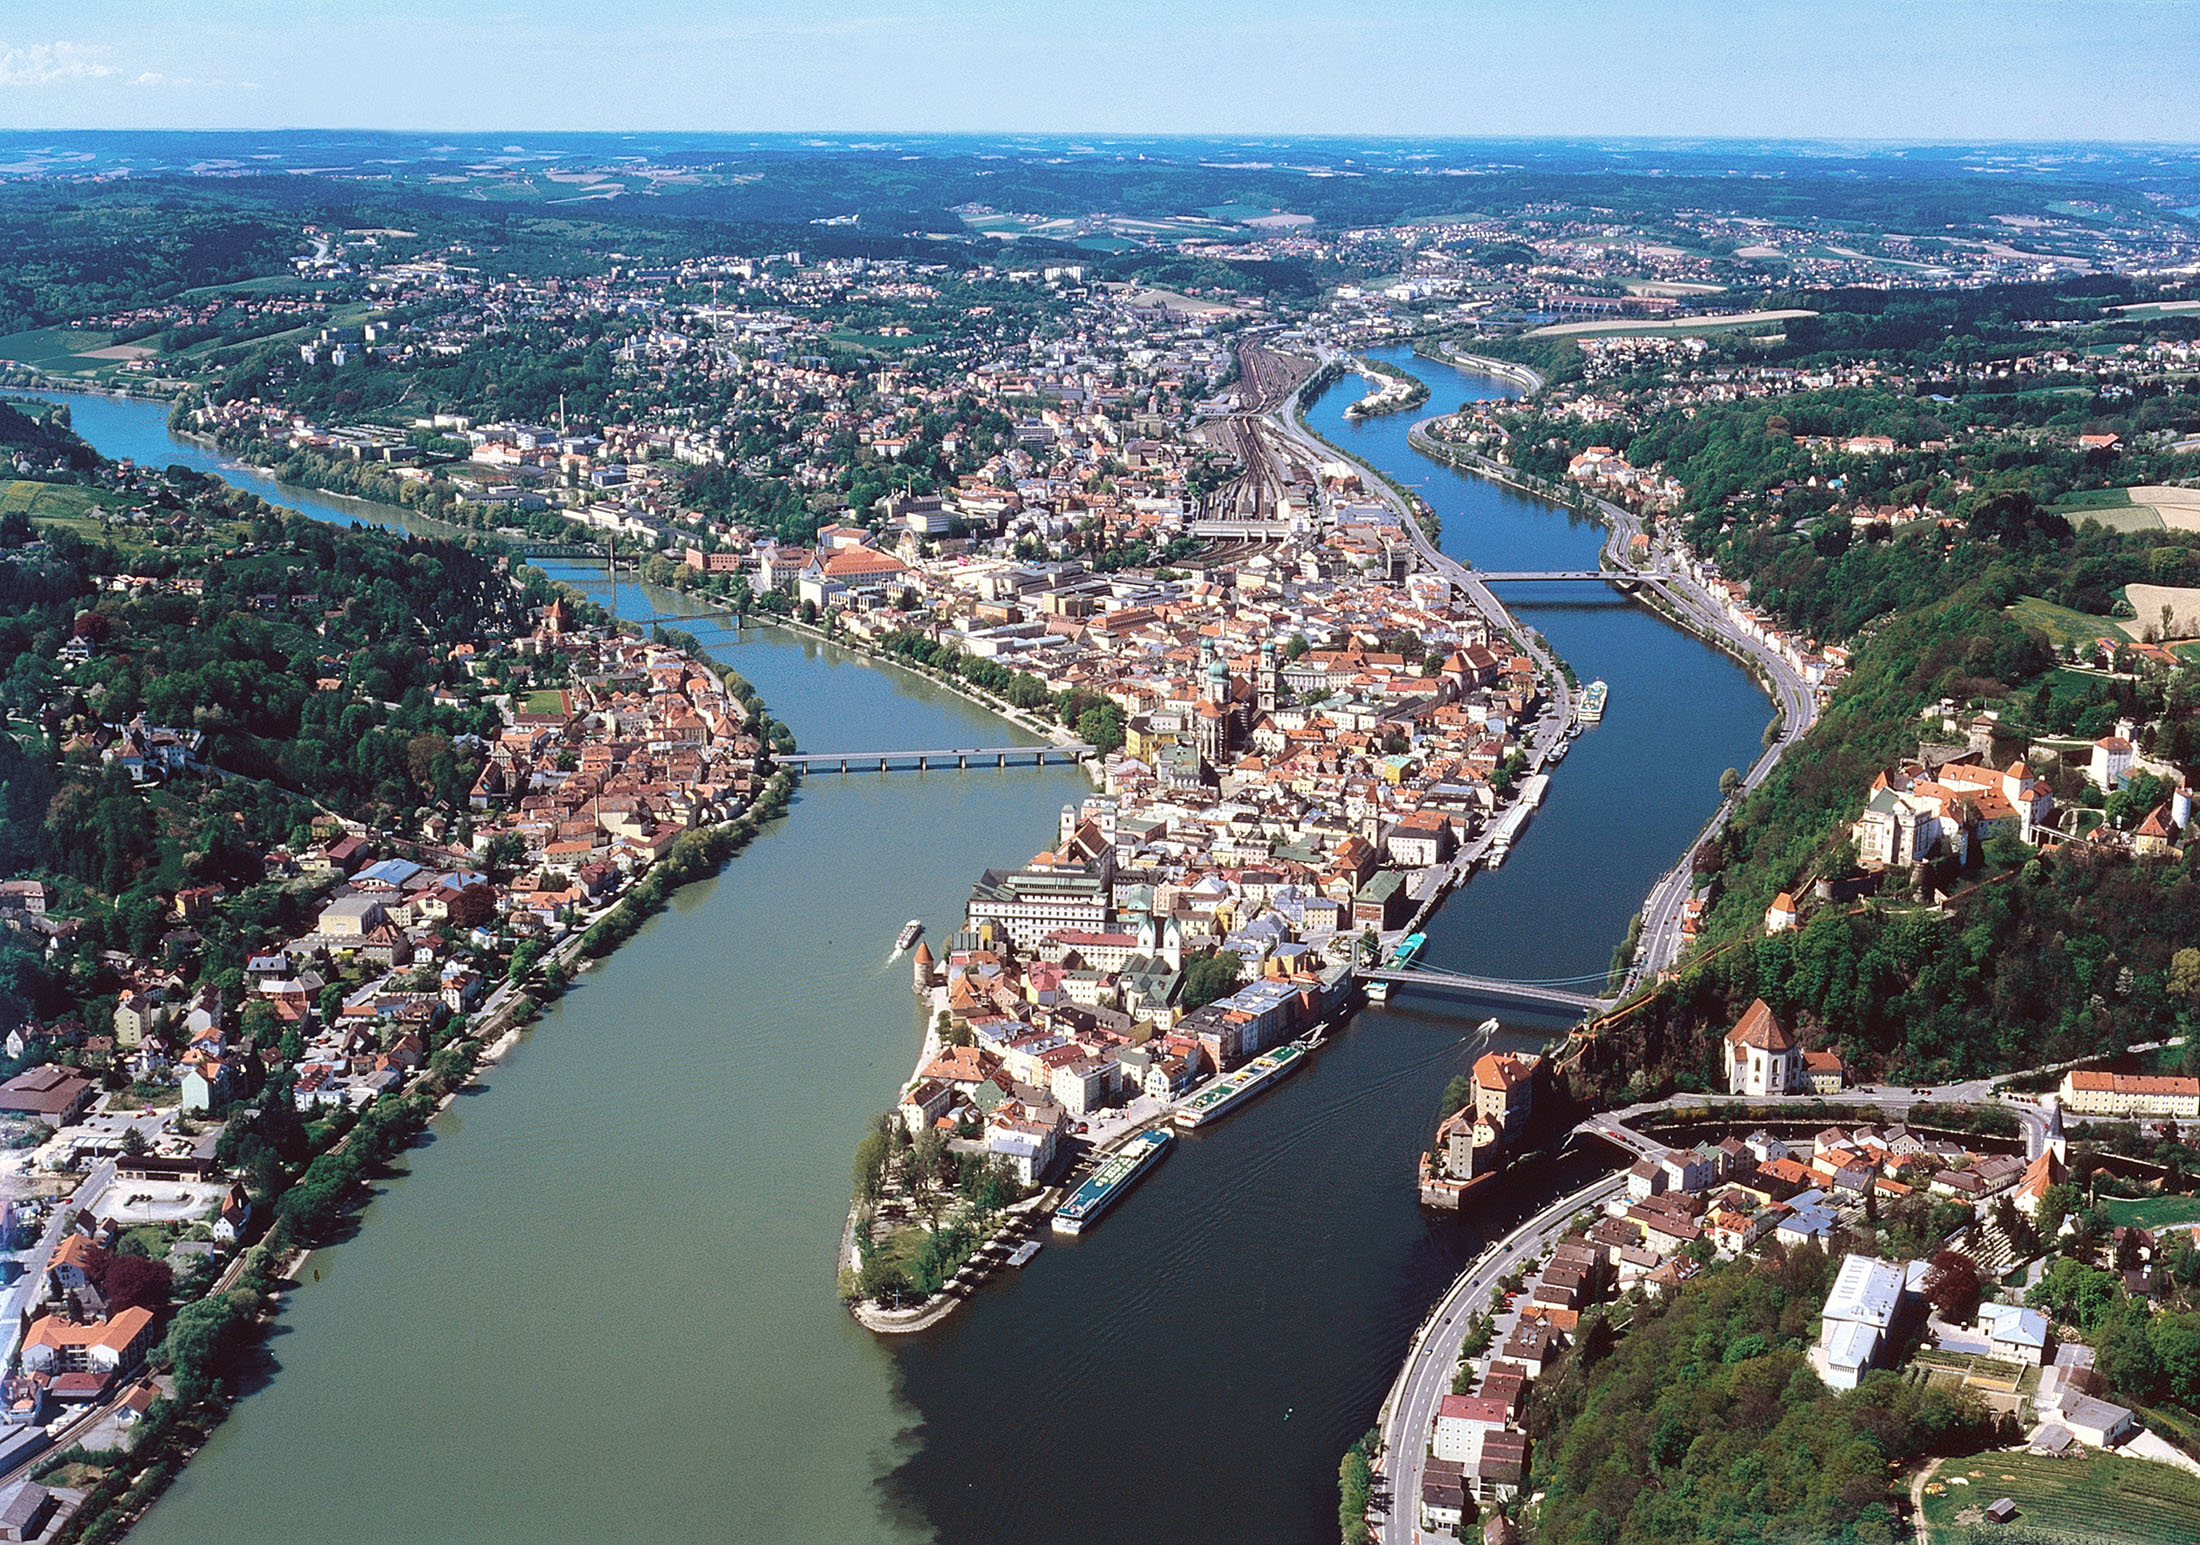 From a boat you can enjoy unforgettable views of Passau